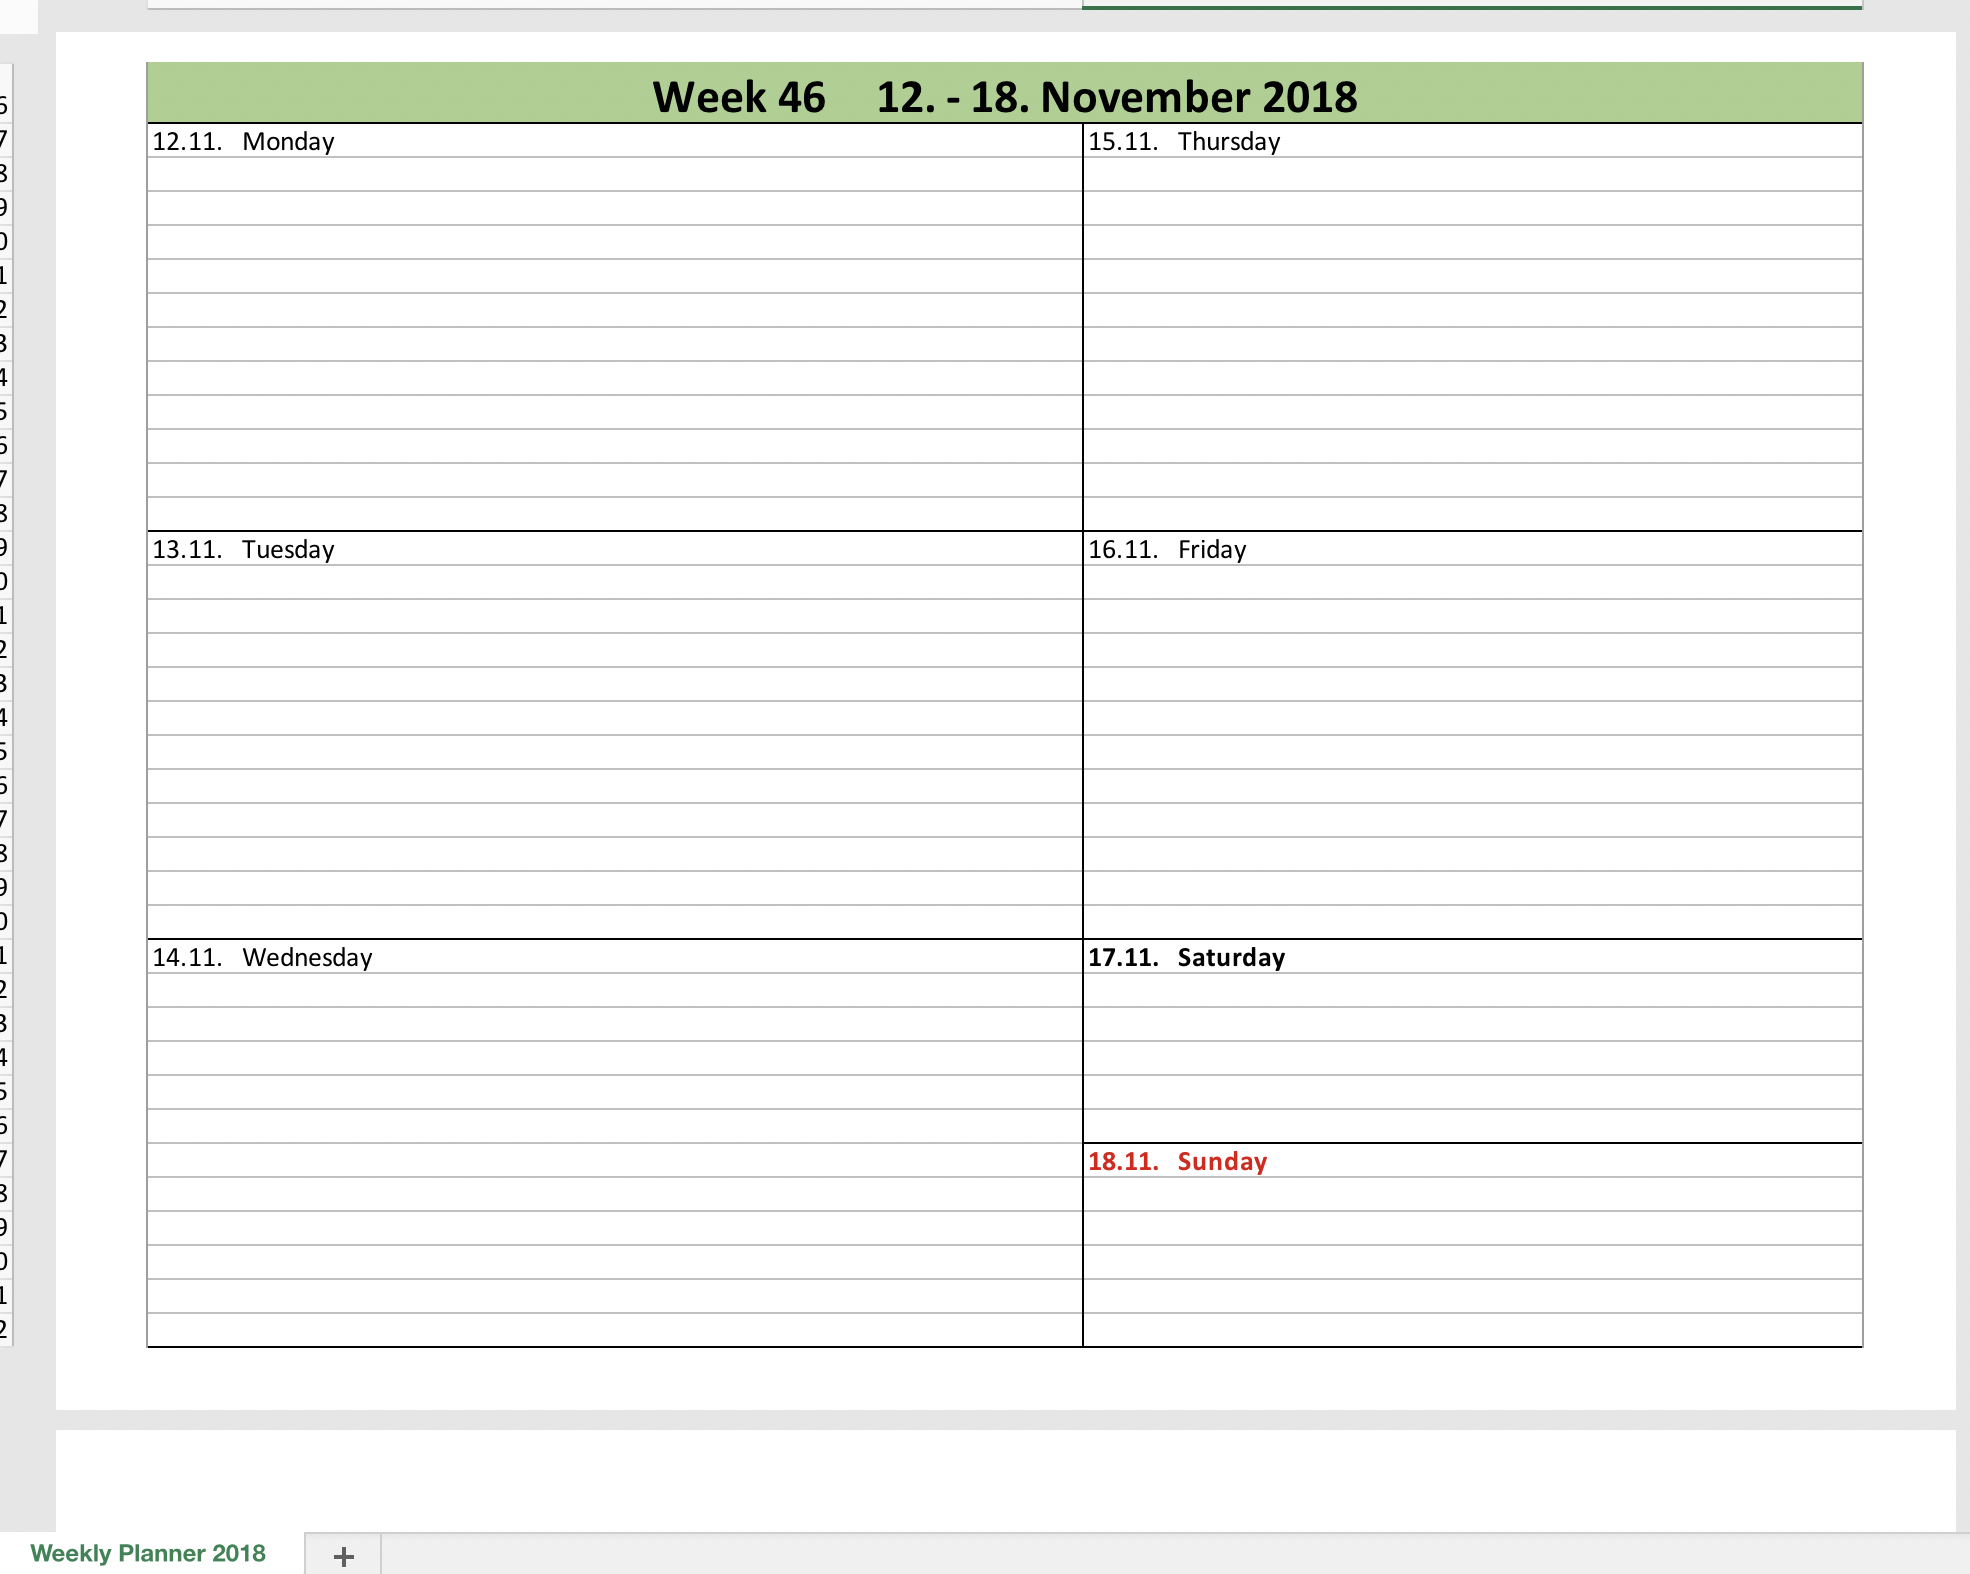 Weekly Calendar 2018 With Excel | Excel Templates For Every Purpose for Excel Calendar Template Weekly